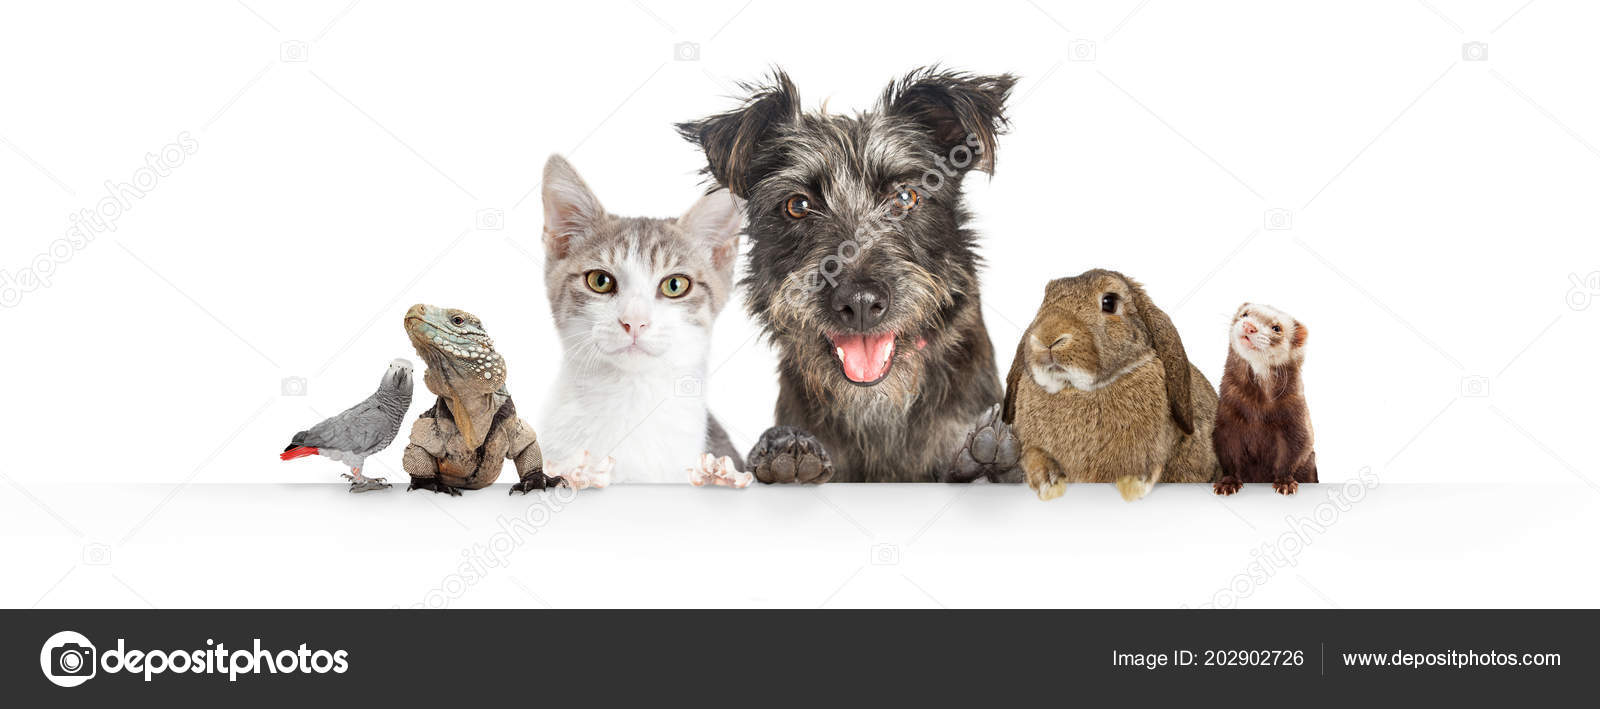 Pictures Cute Pet Website Common Cute Domestic Animal Pets Hanging White Horizontal Website Banner Stock Photo C Adogslifephoto 202902726